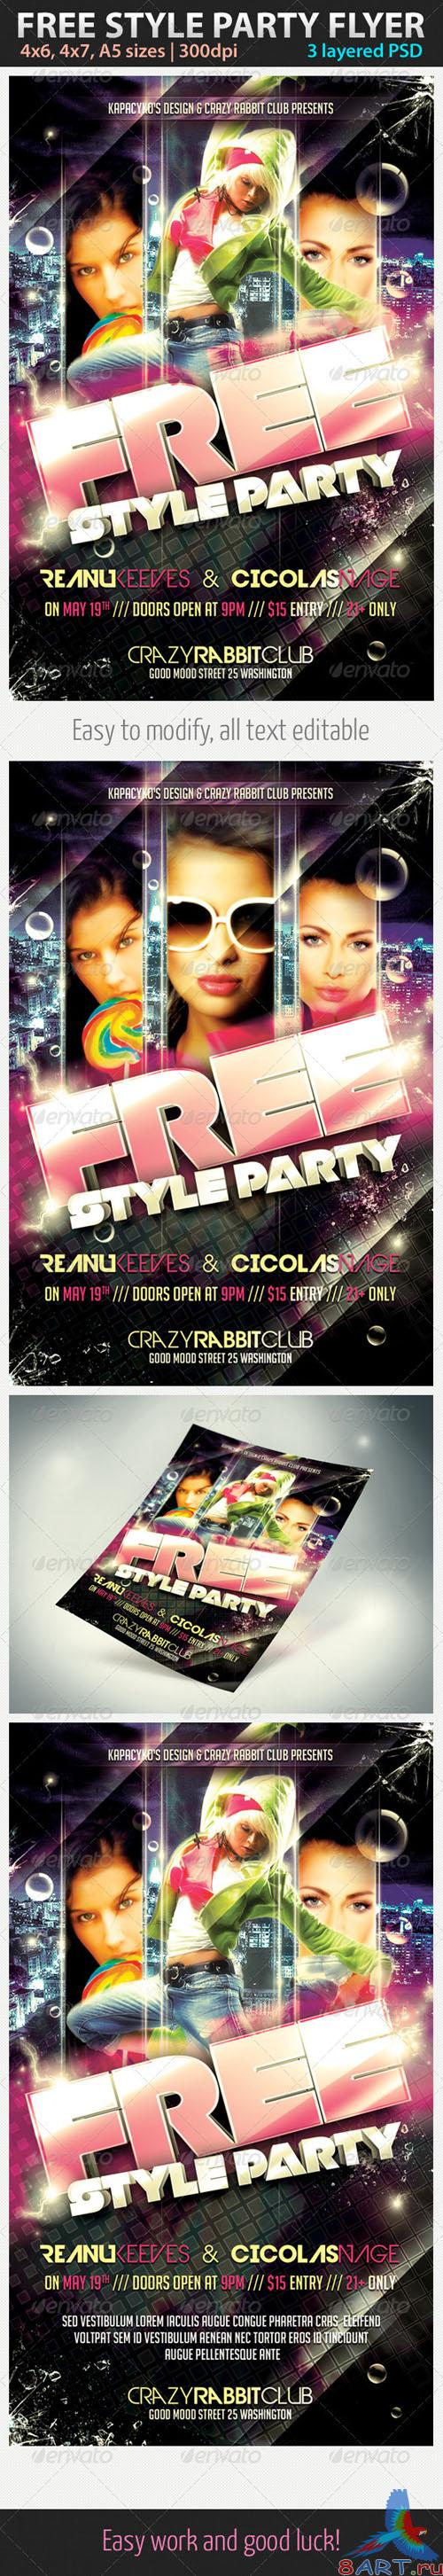 GraphicRiver - Free Style Party Flyer 2556971